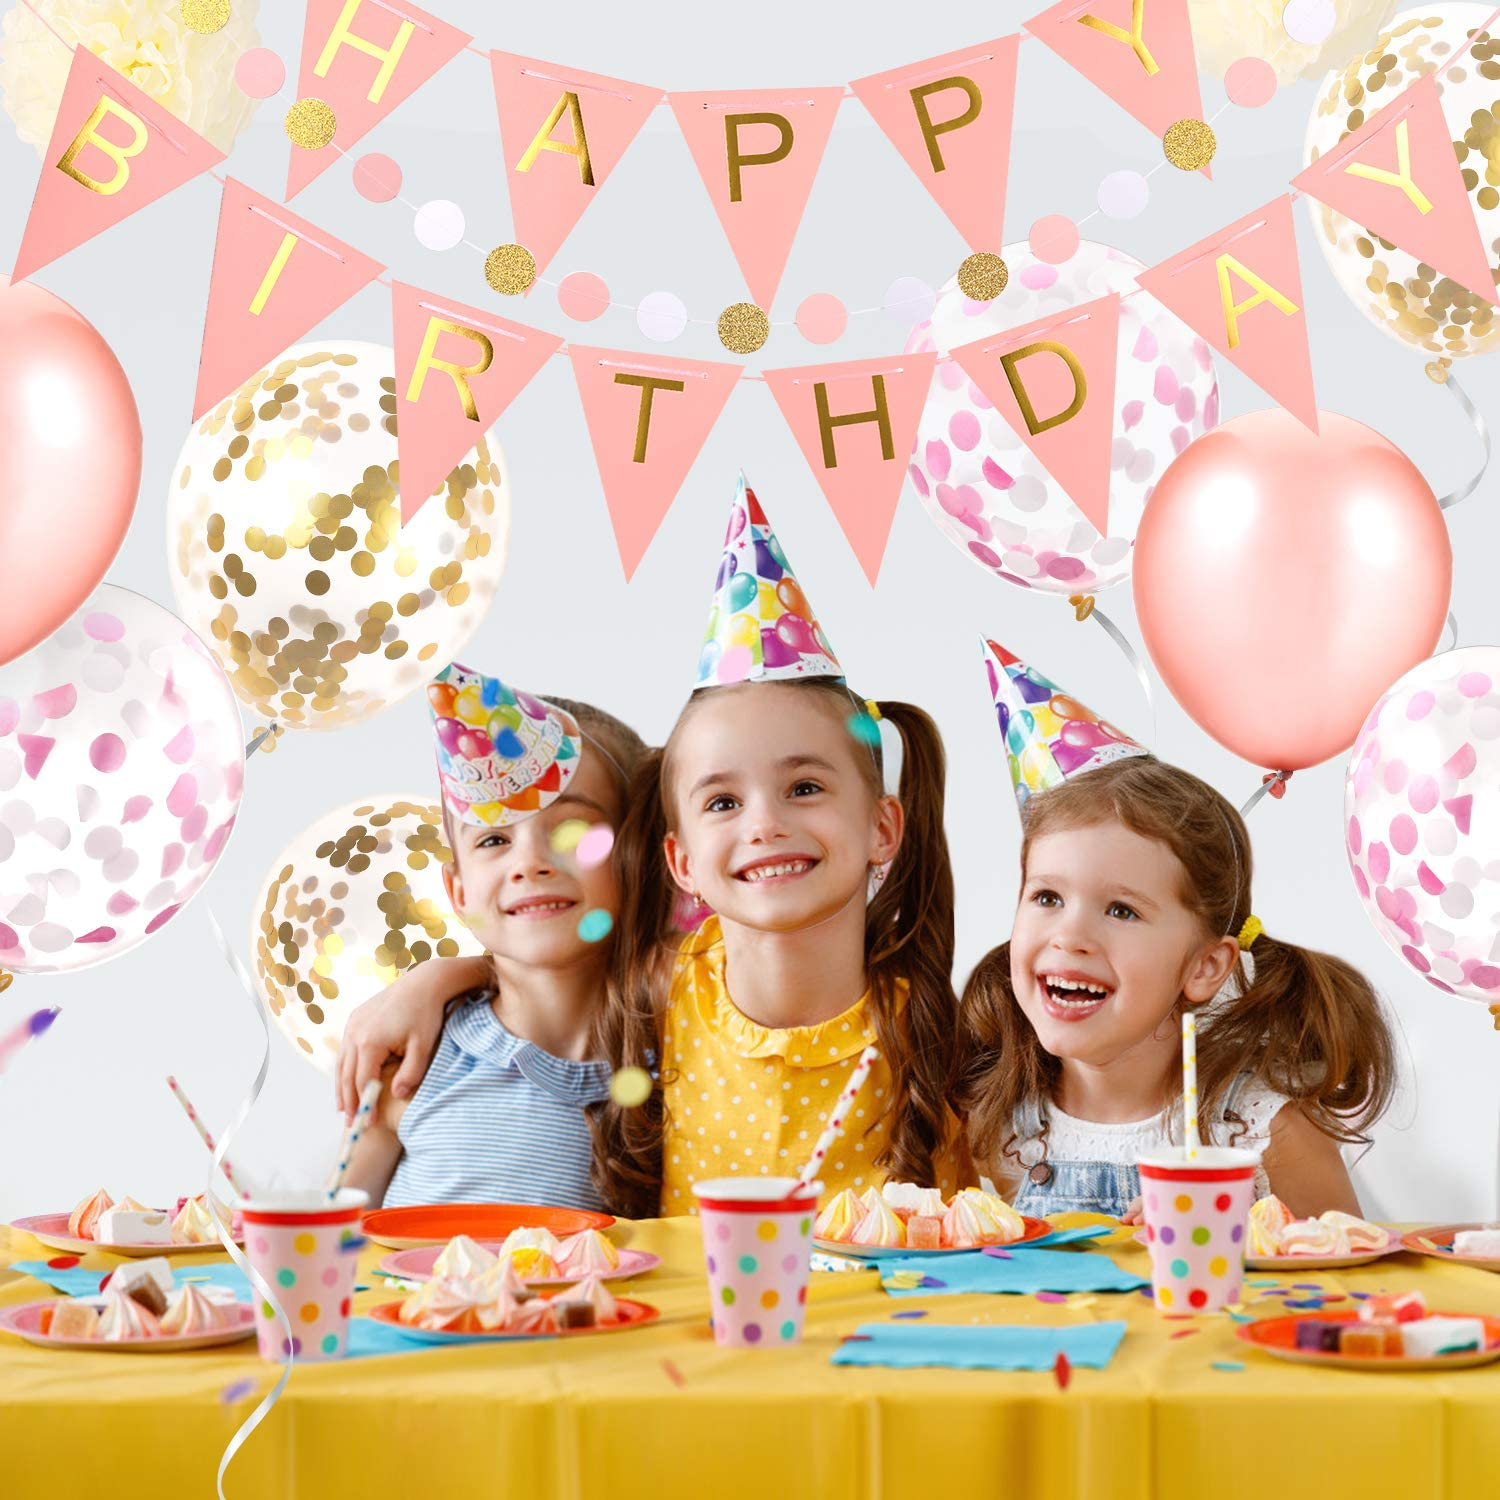 Birthday Banner Confetti Balloons Pom Poms Tissue Flowers Hanging Swirl Streamers All-in-One Princess Party Supplies GAGAKU Happy Birthday Party Decorations for Women Girls